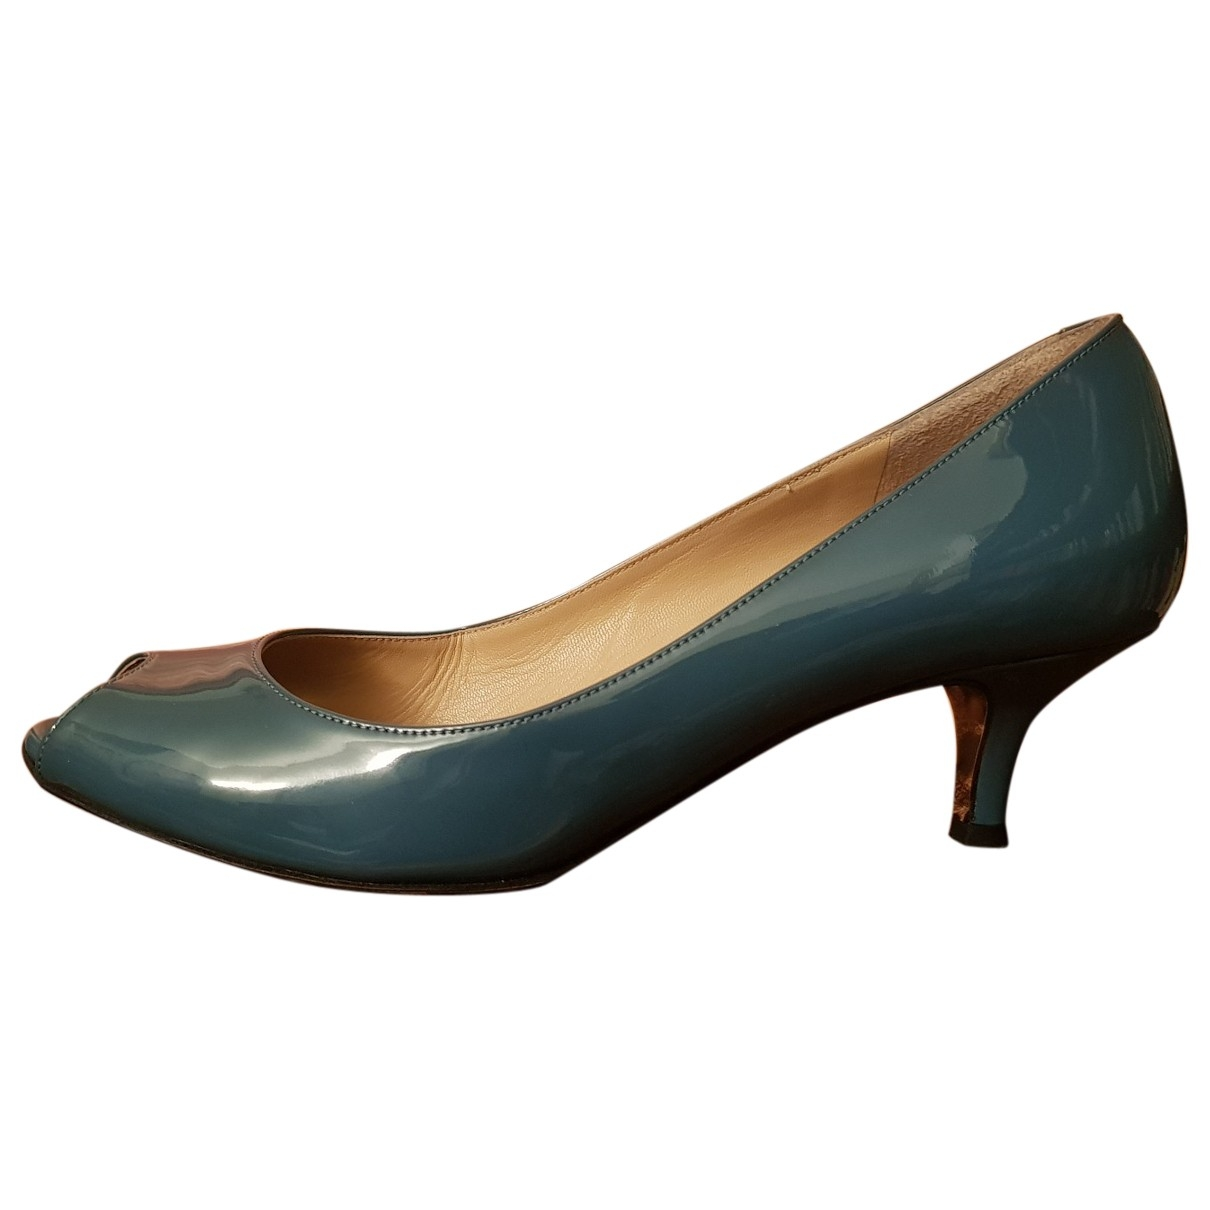 Dolce & Gabbana \N Turquoise Patent leather Heels for Women 36 EU